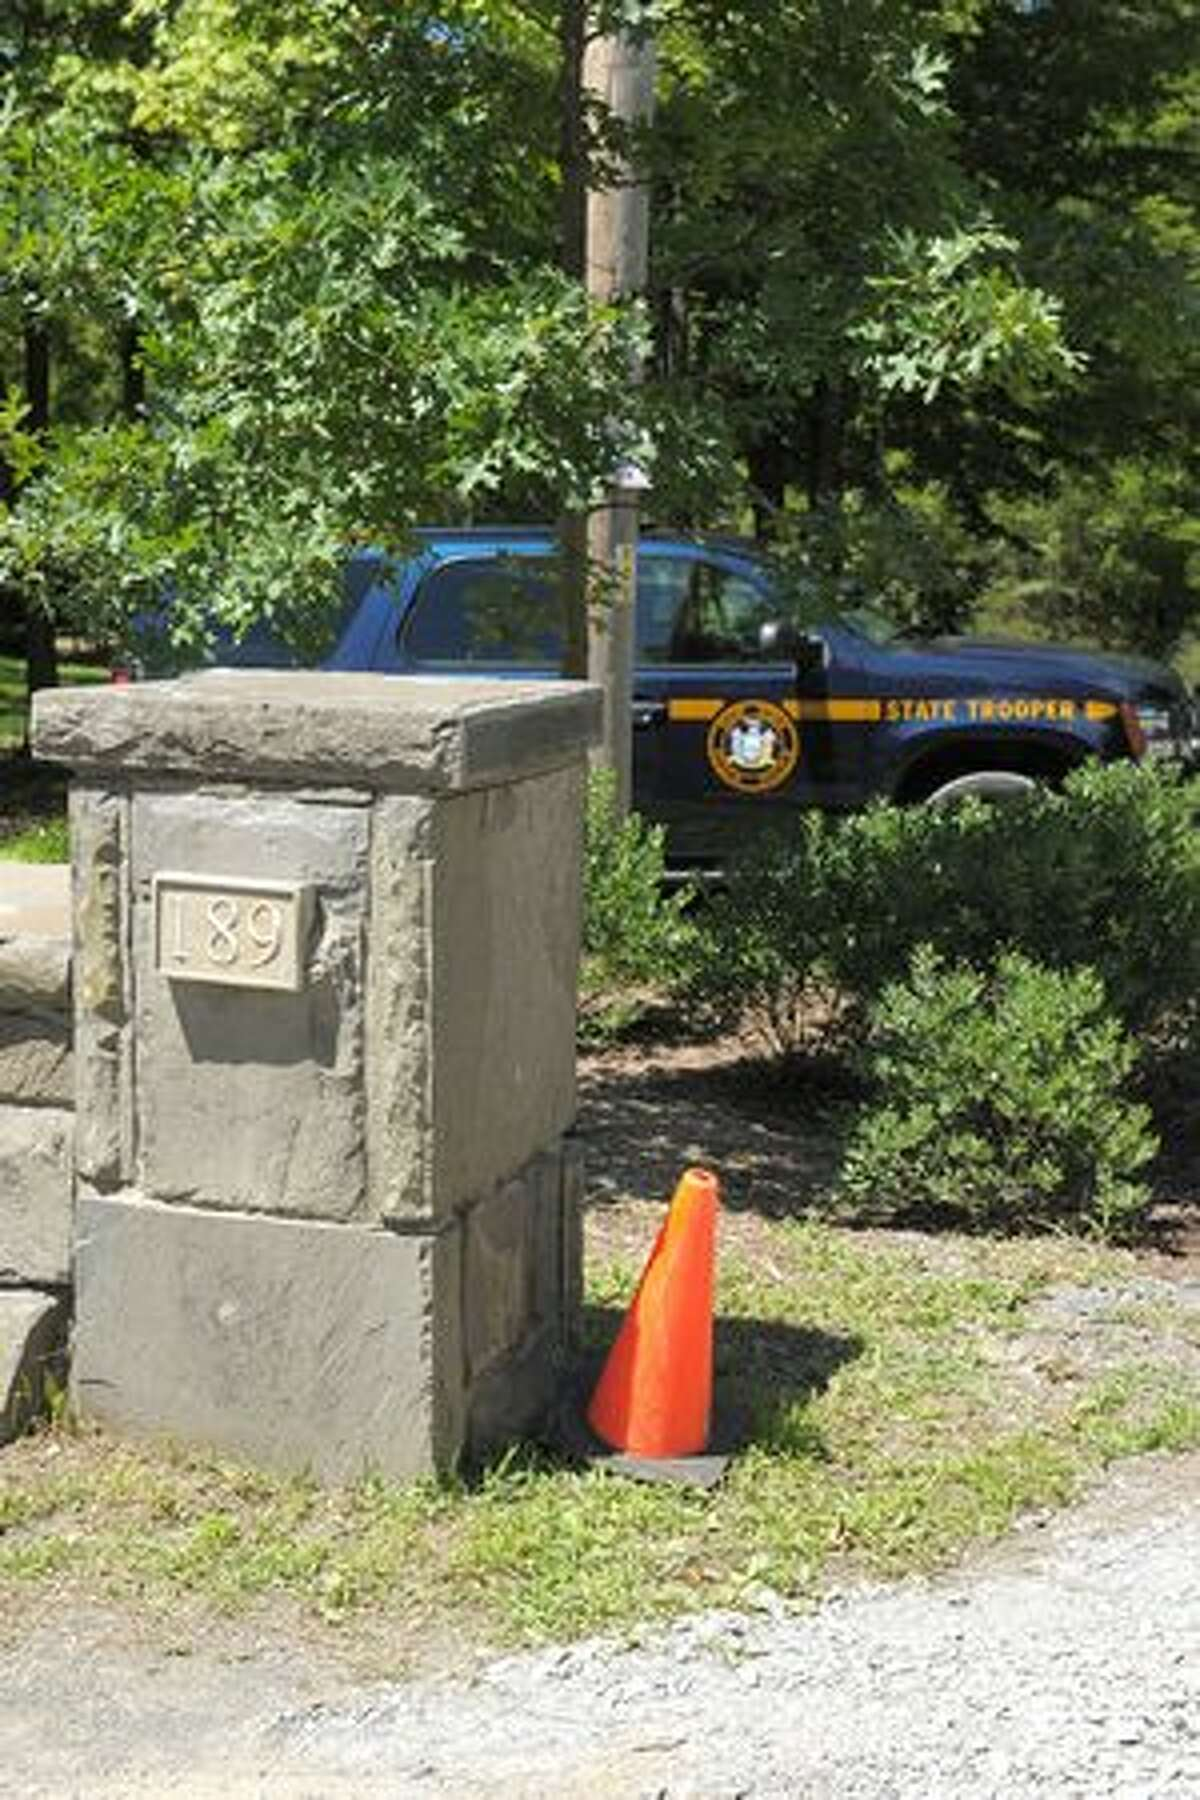 A general view of one of the State Trooper guarded entrances to Astor Manor at 189 River Road as the town prepares for the wedding of Chelsea Clinton and Marc Mezvinsky on July 31, 2010 in Rhinebeck, New York.